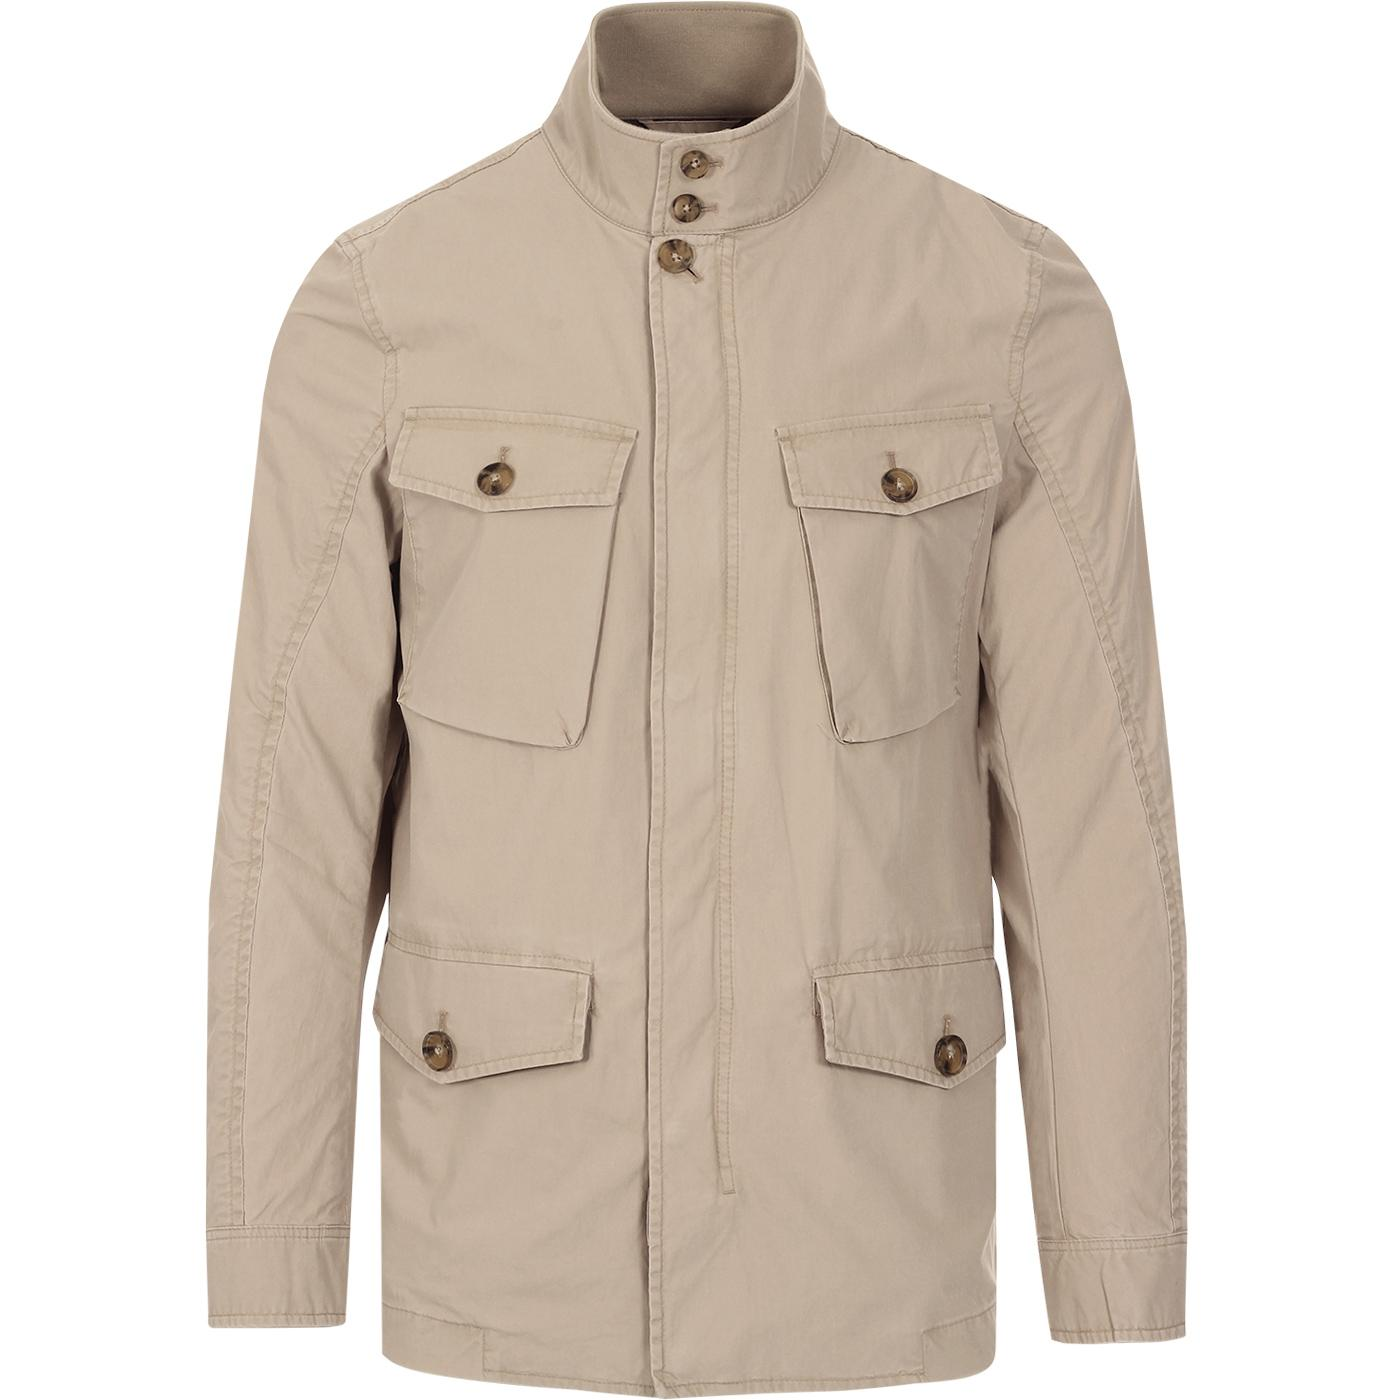 BARACUTA Iconic Wash Military Field Jacket (Sand)